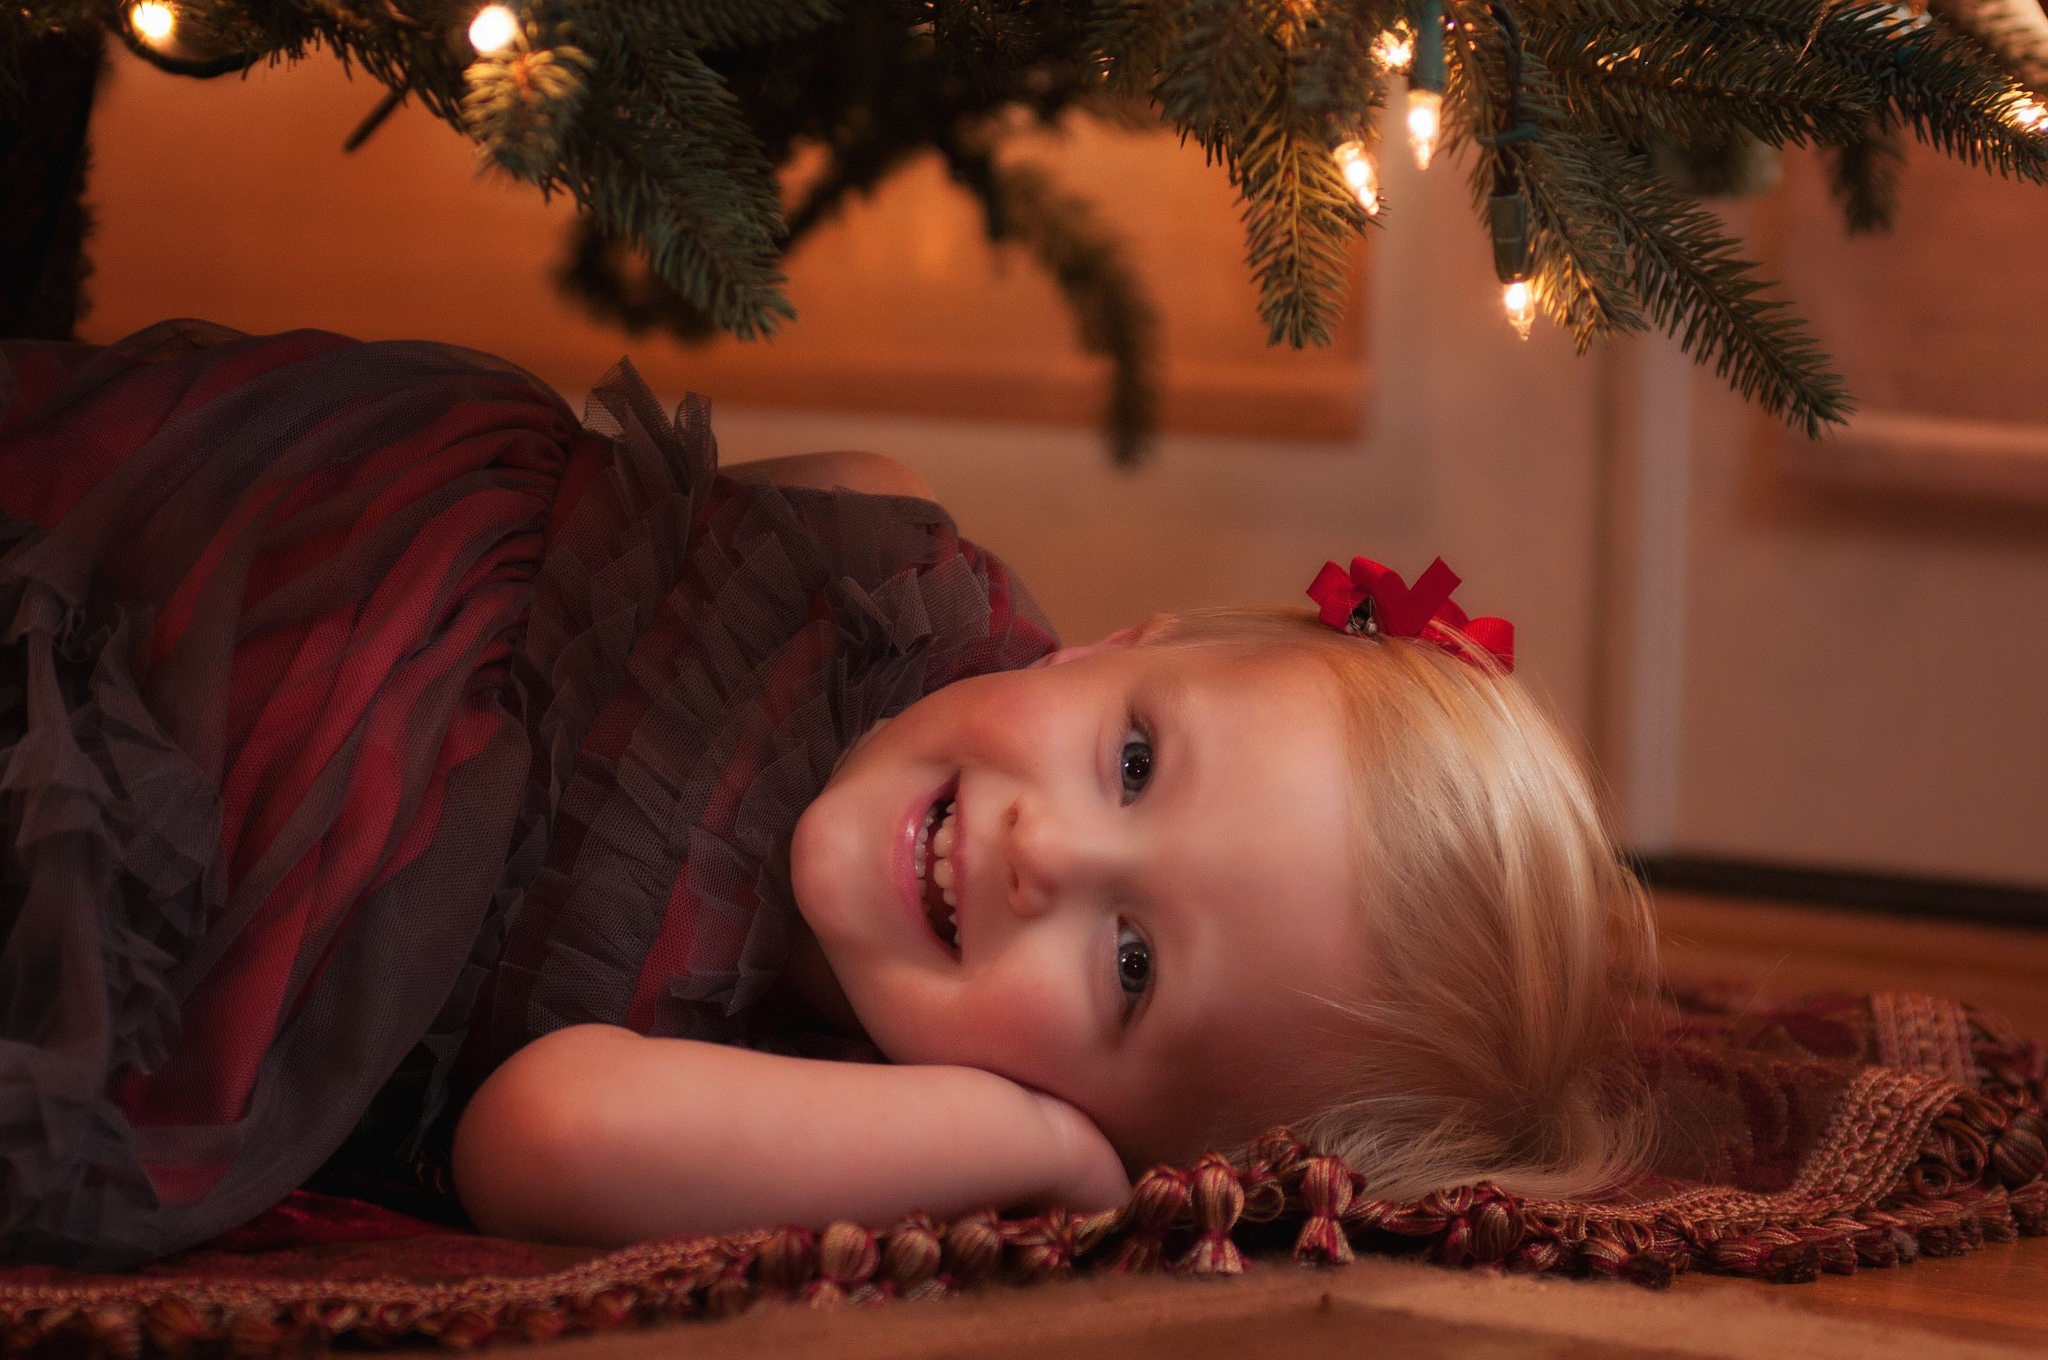 a-child-plays-under-the-christmas-tree